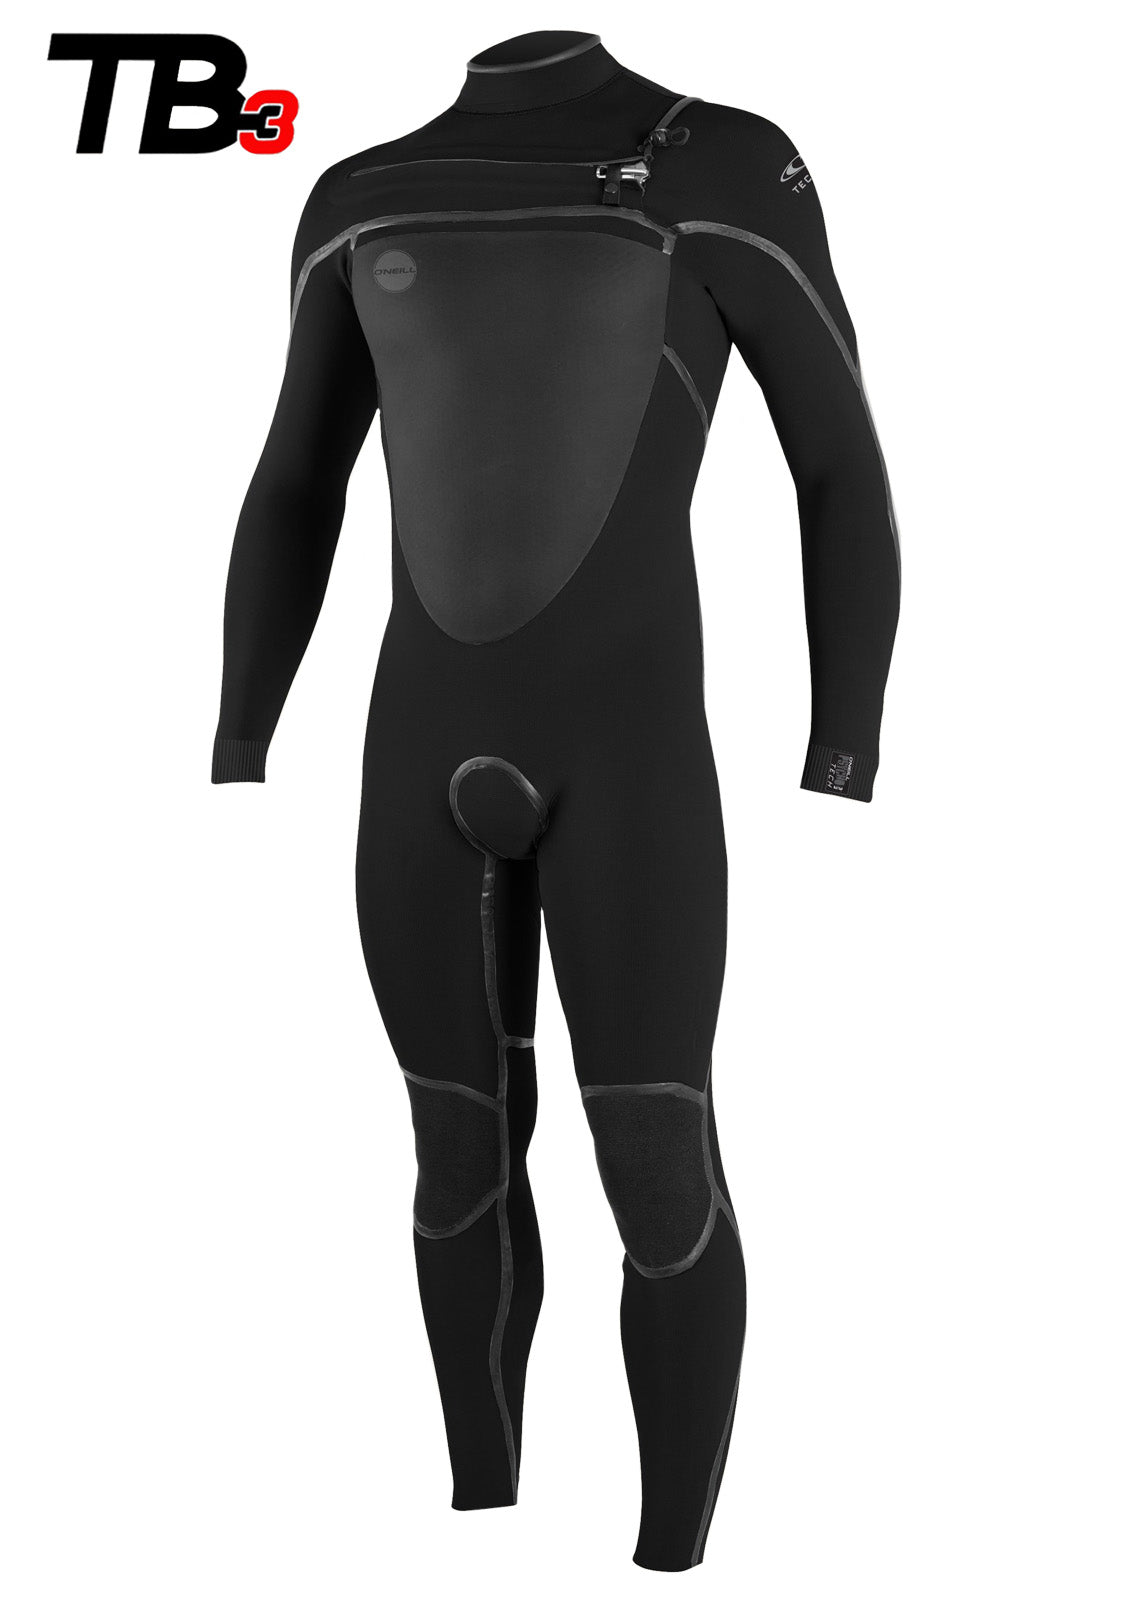 O'Neill Men's PsychoTech 3/2mm Chest Zip Fullsuit Wetsuit